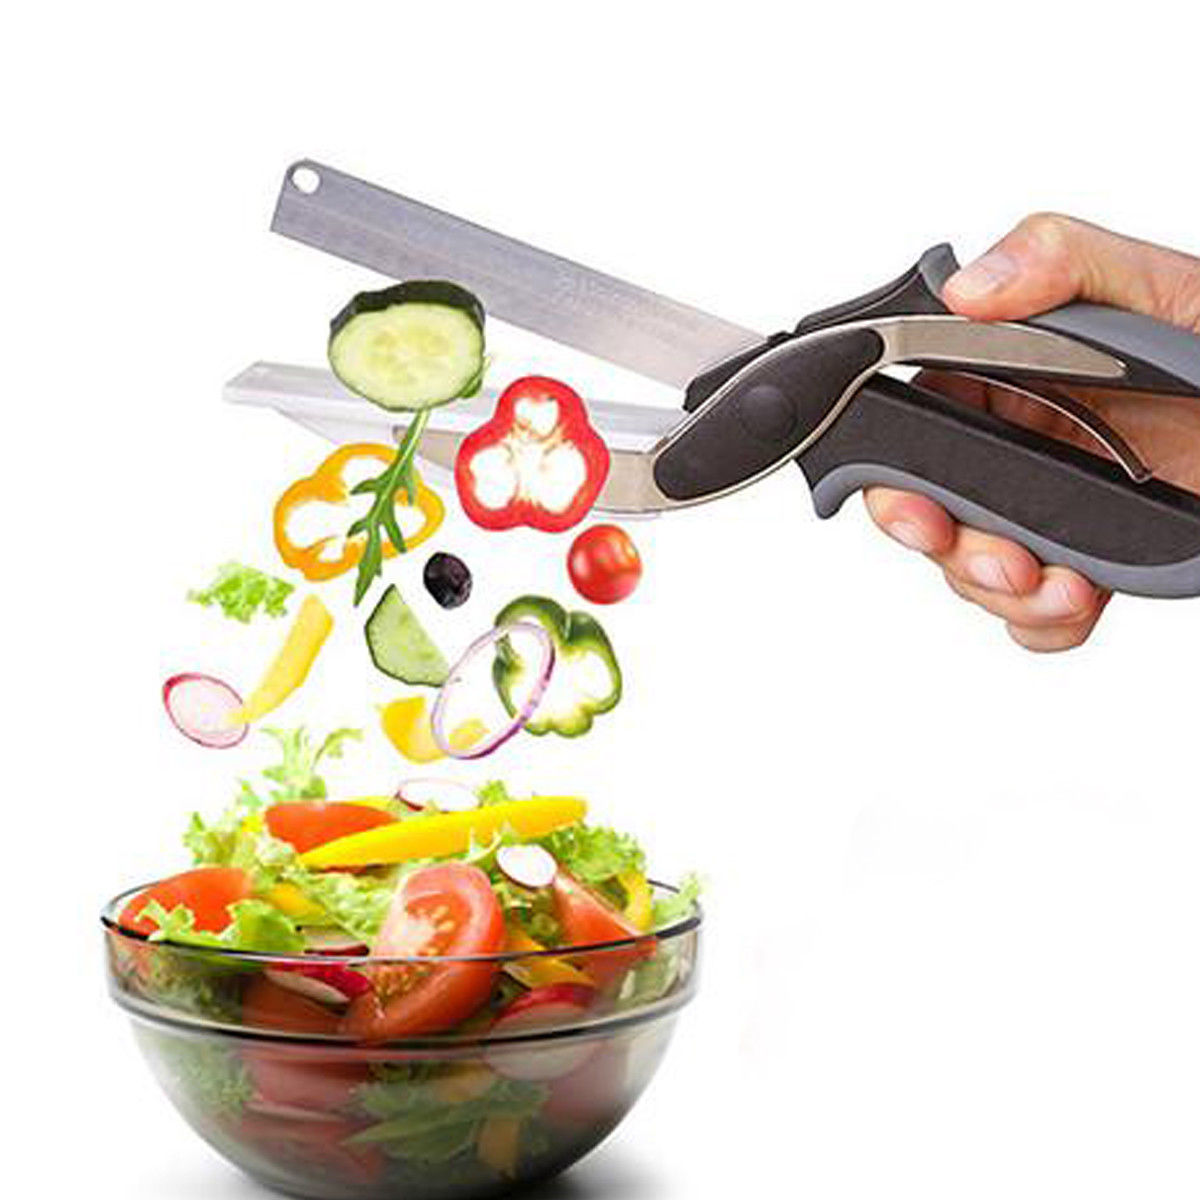 2 in 1 Stainless Steel Kitchen Knife and Scissors for Cutting and Chopping Fruits and Vegetable 7